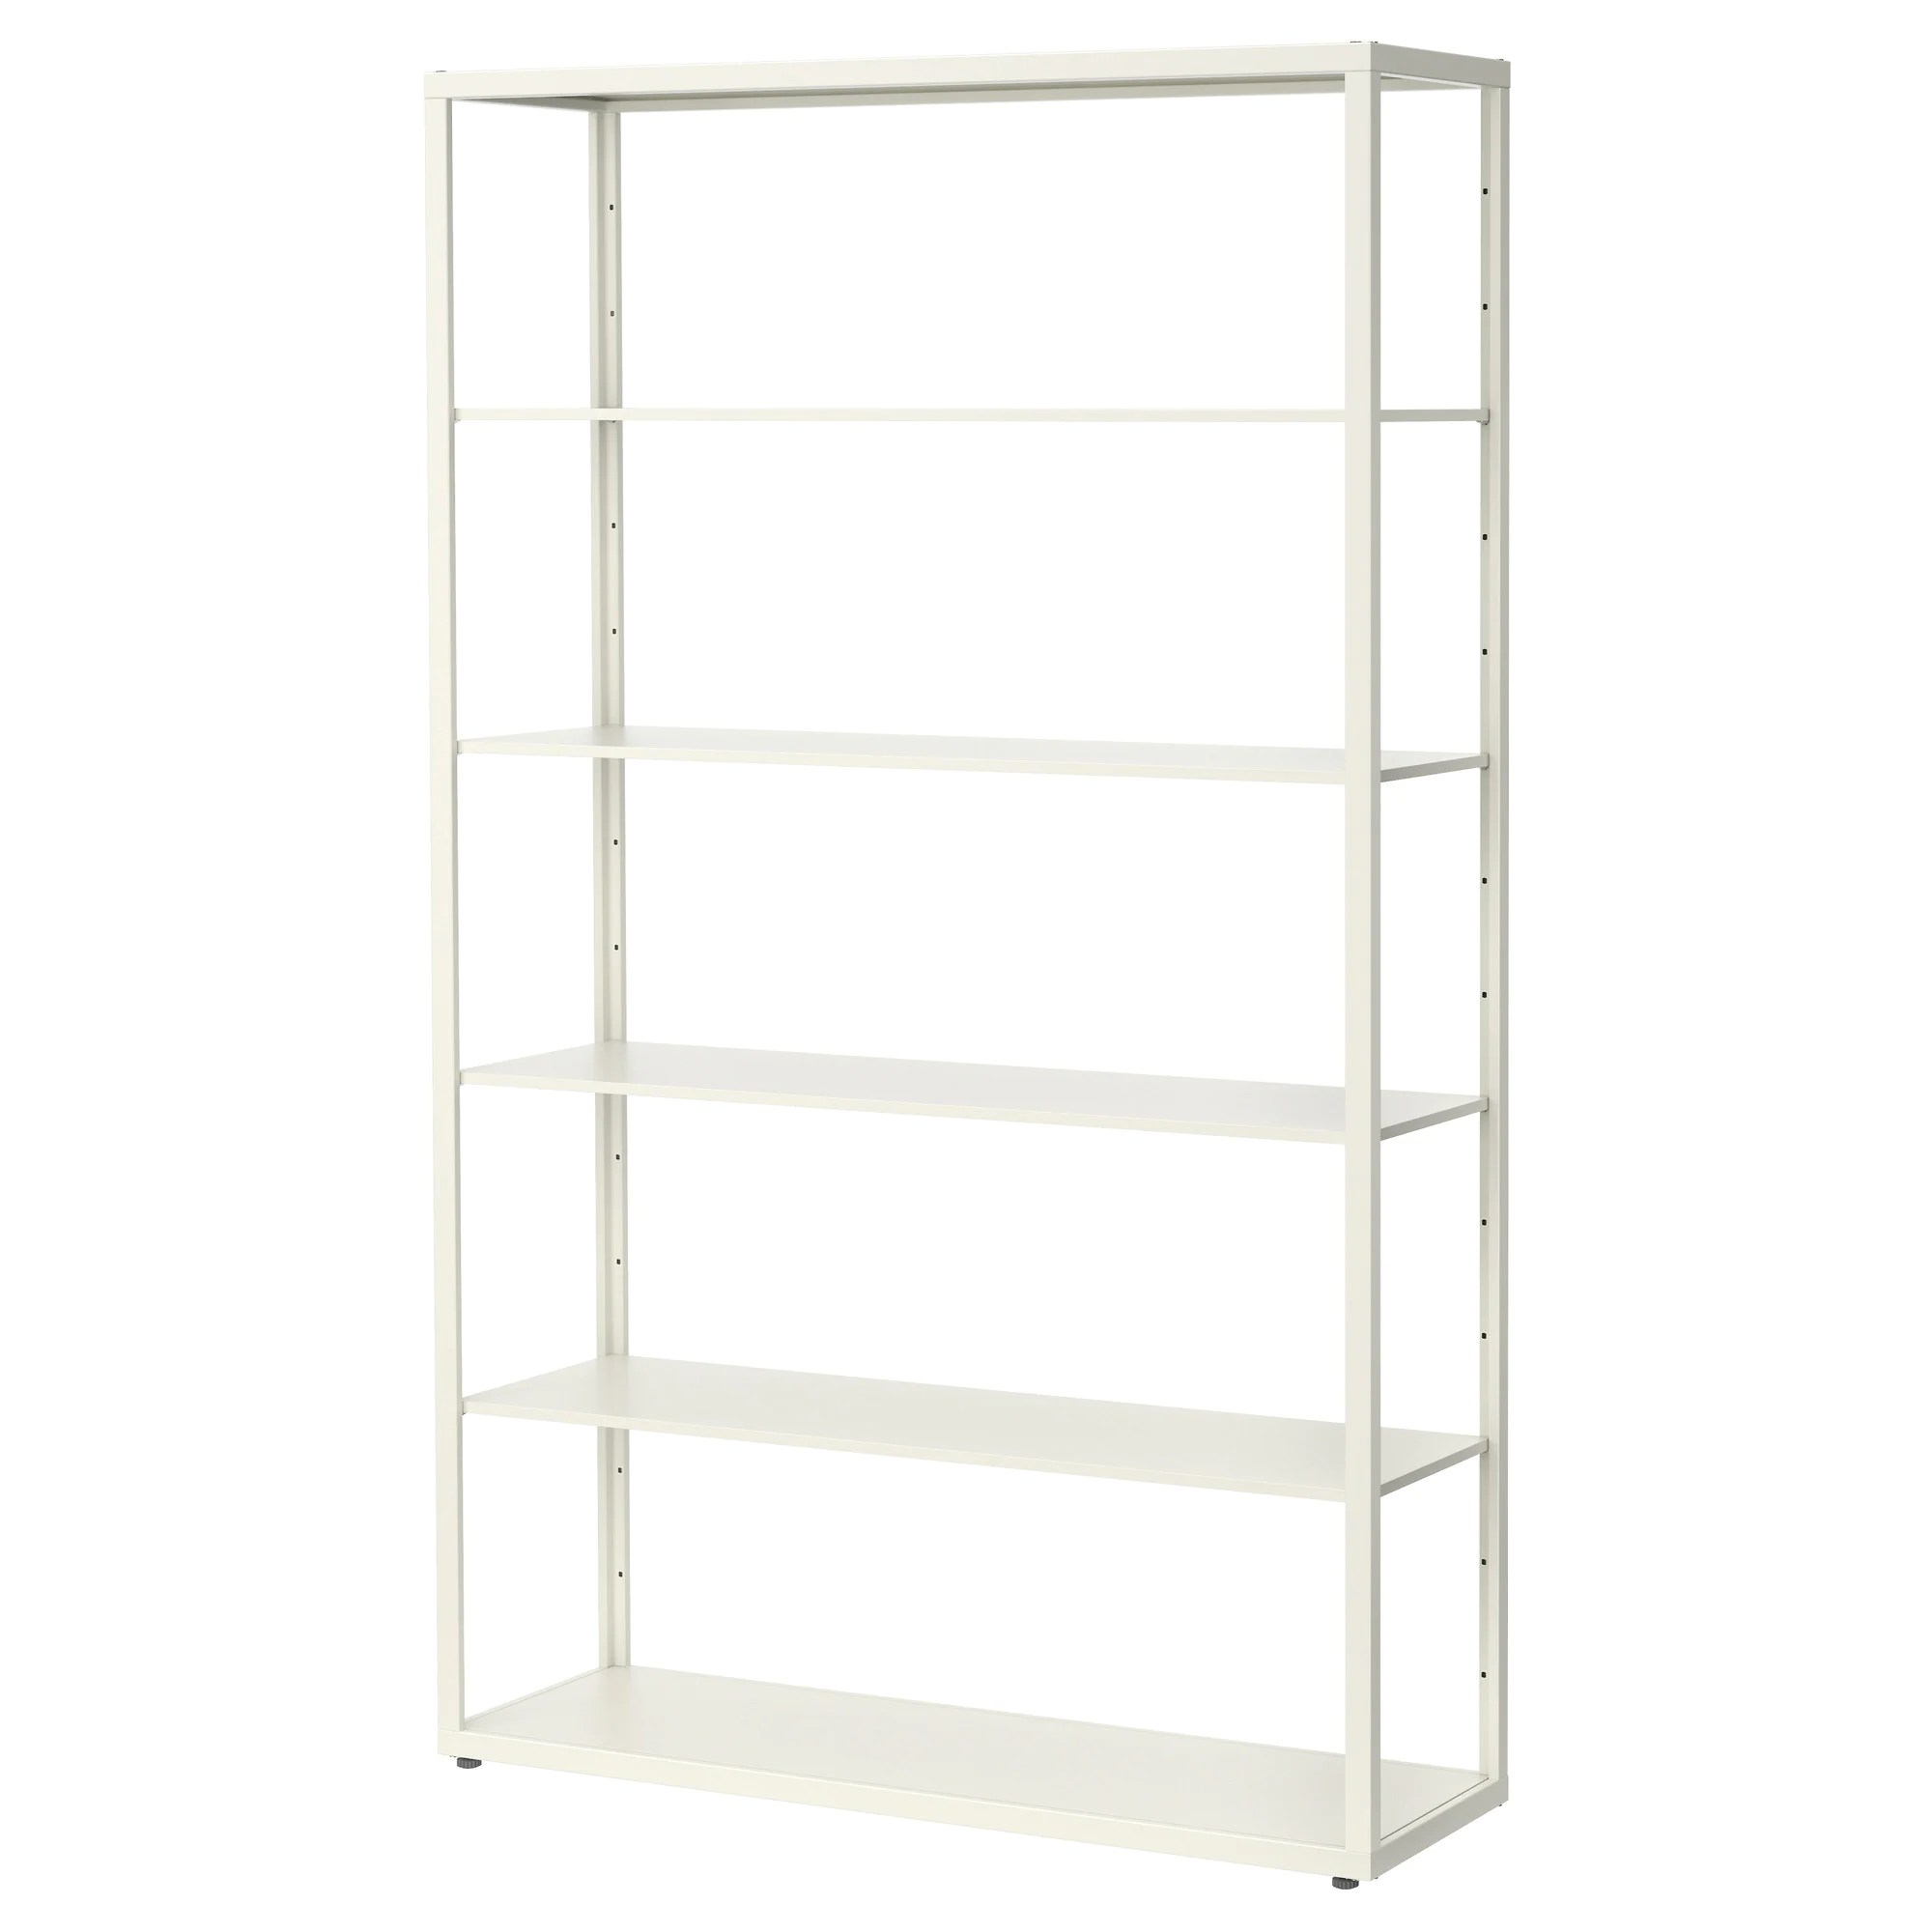 Metal Shelving FjÄlkinge Shelf Unit White